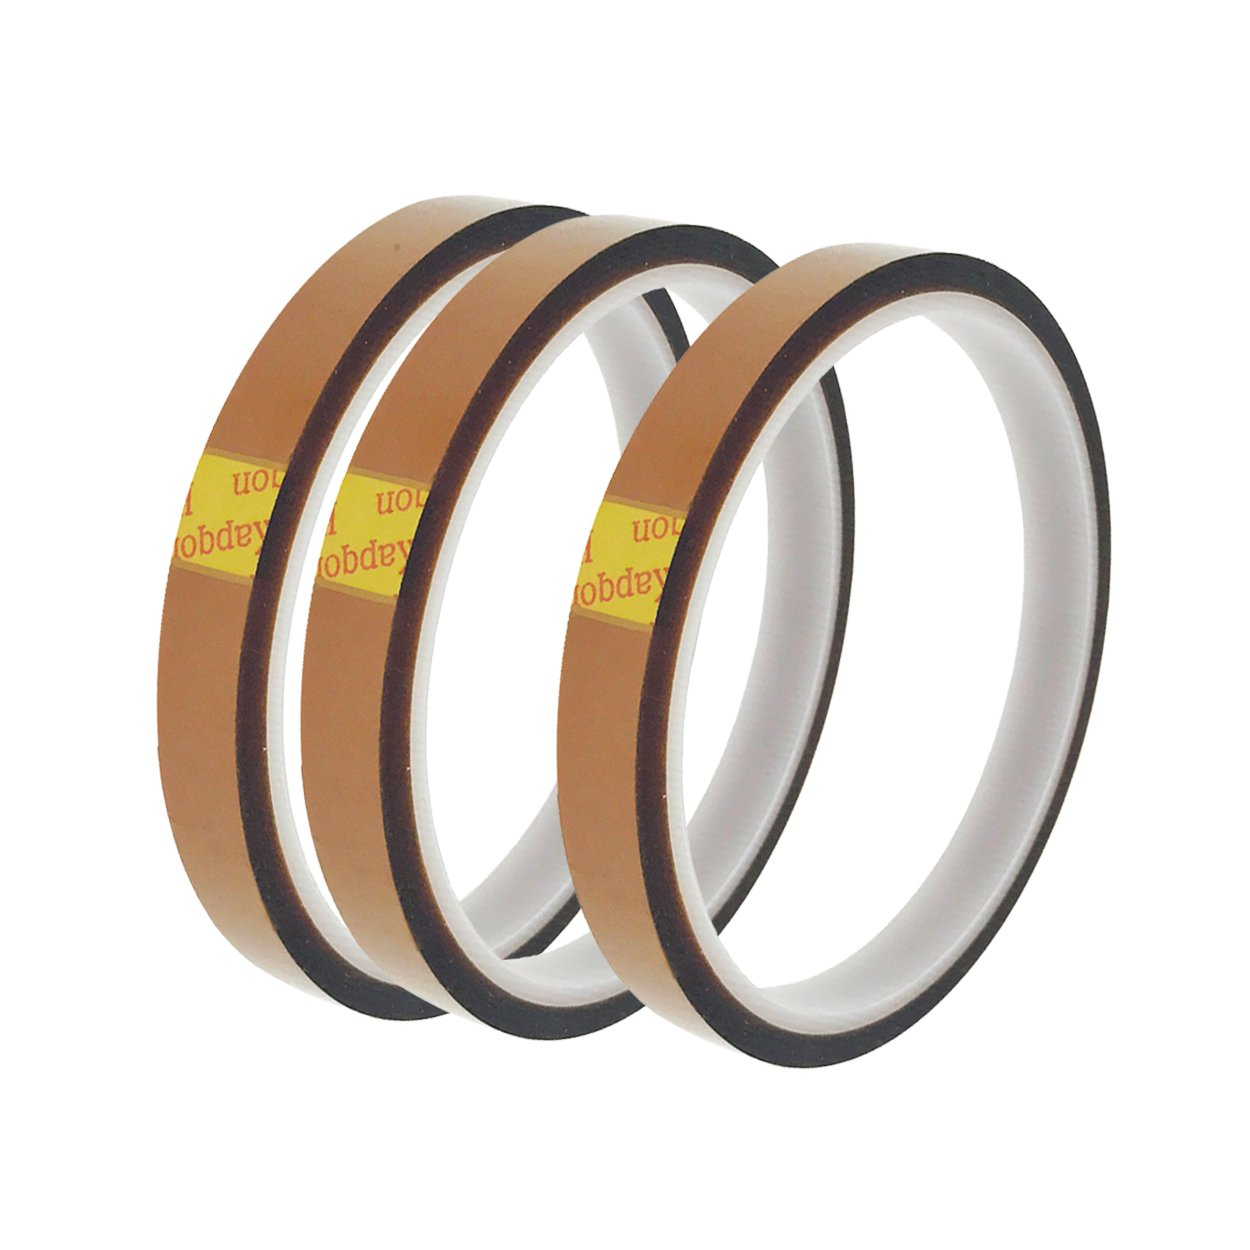 Saim High Temperature Heat Resistant Tape Polyimide Film Adhesive Tape 10mm x 30m, Pack of 3